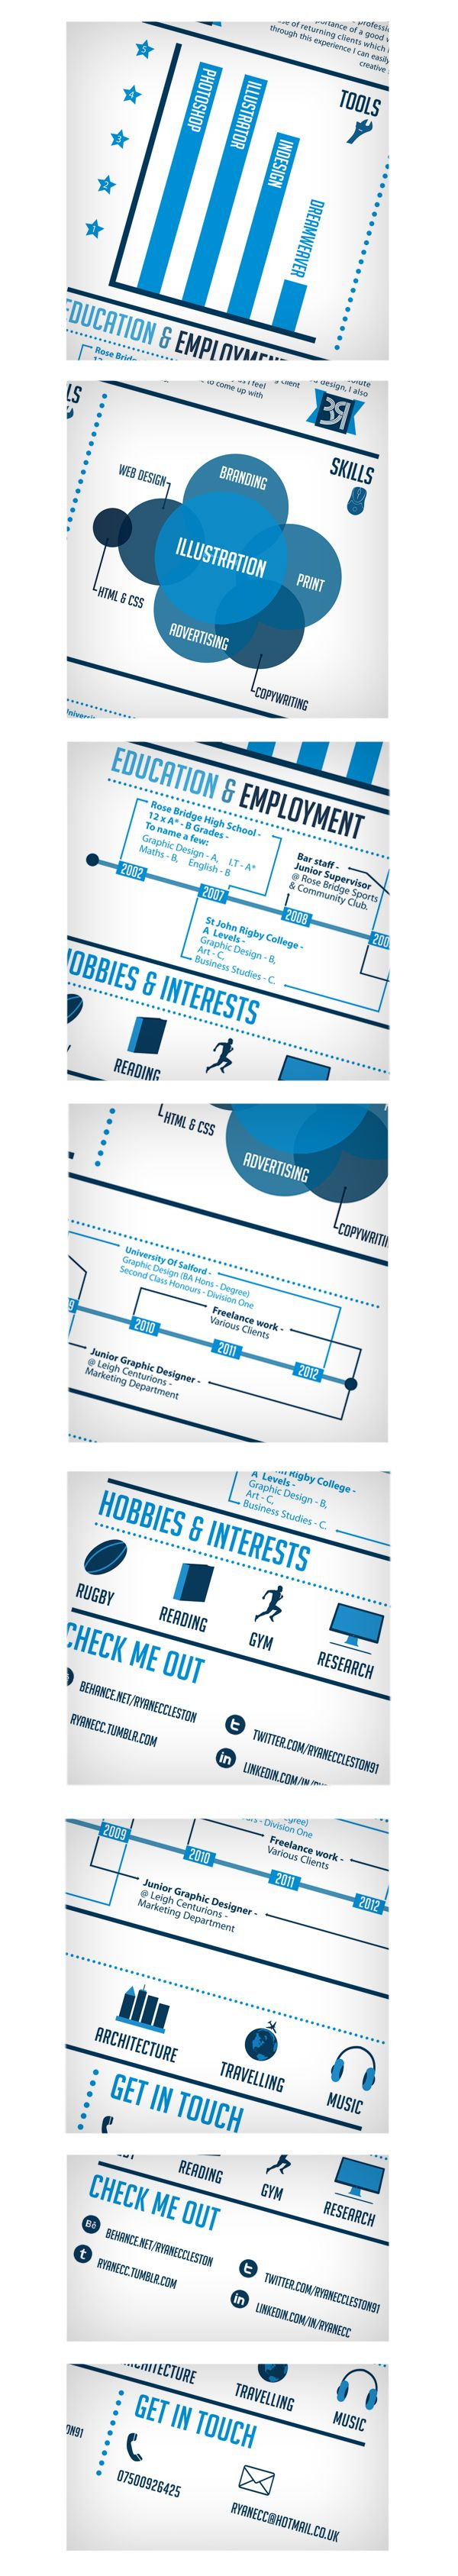 best ideas about creative resumes infographic curriculum vitae web design by ryan eccleston via behance